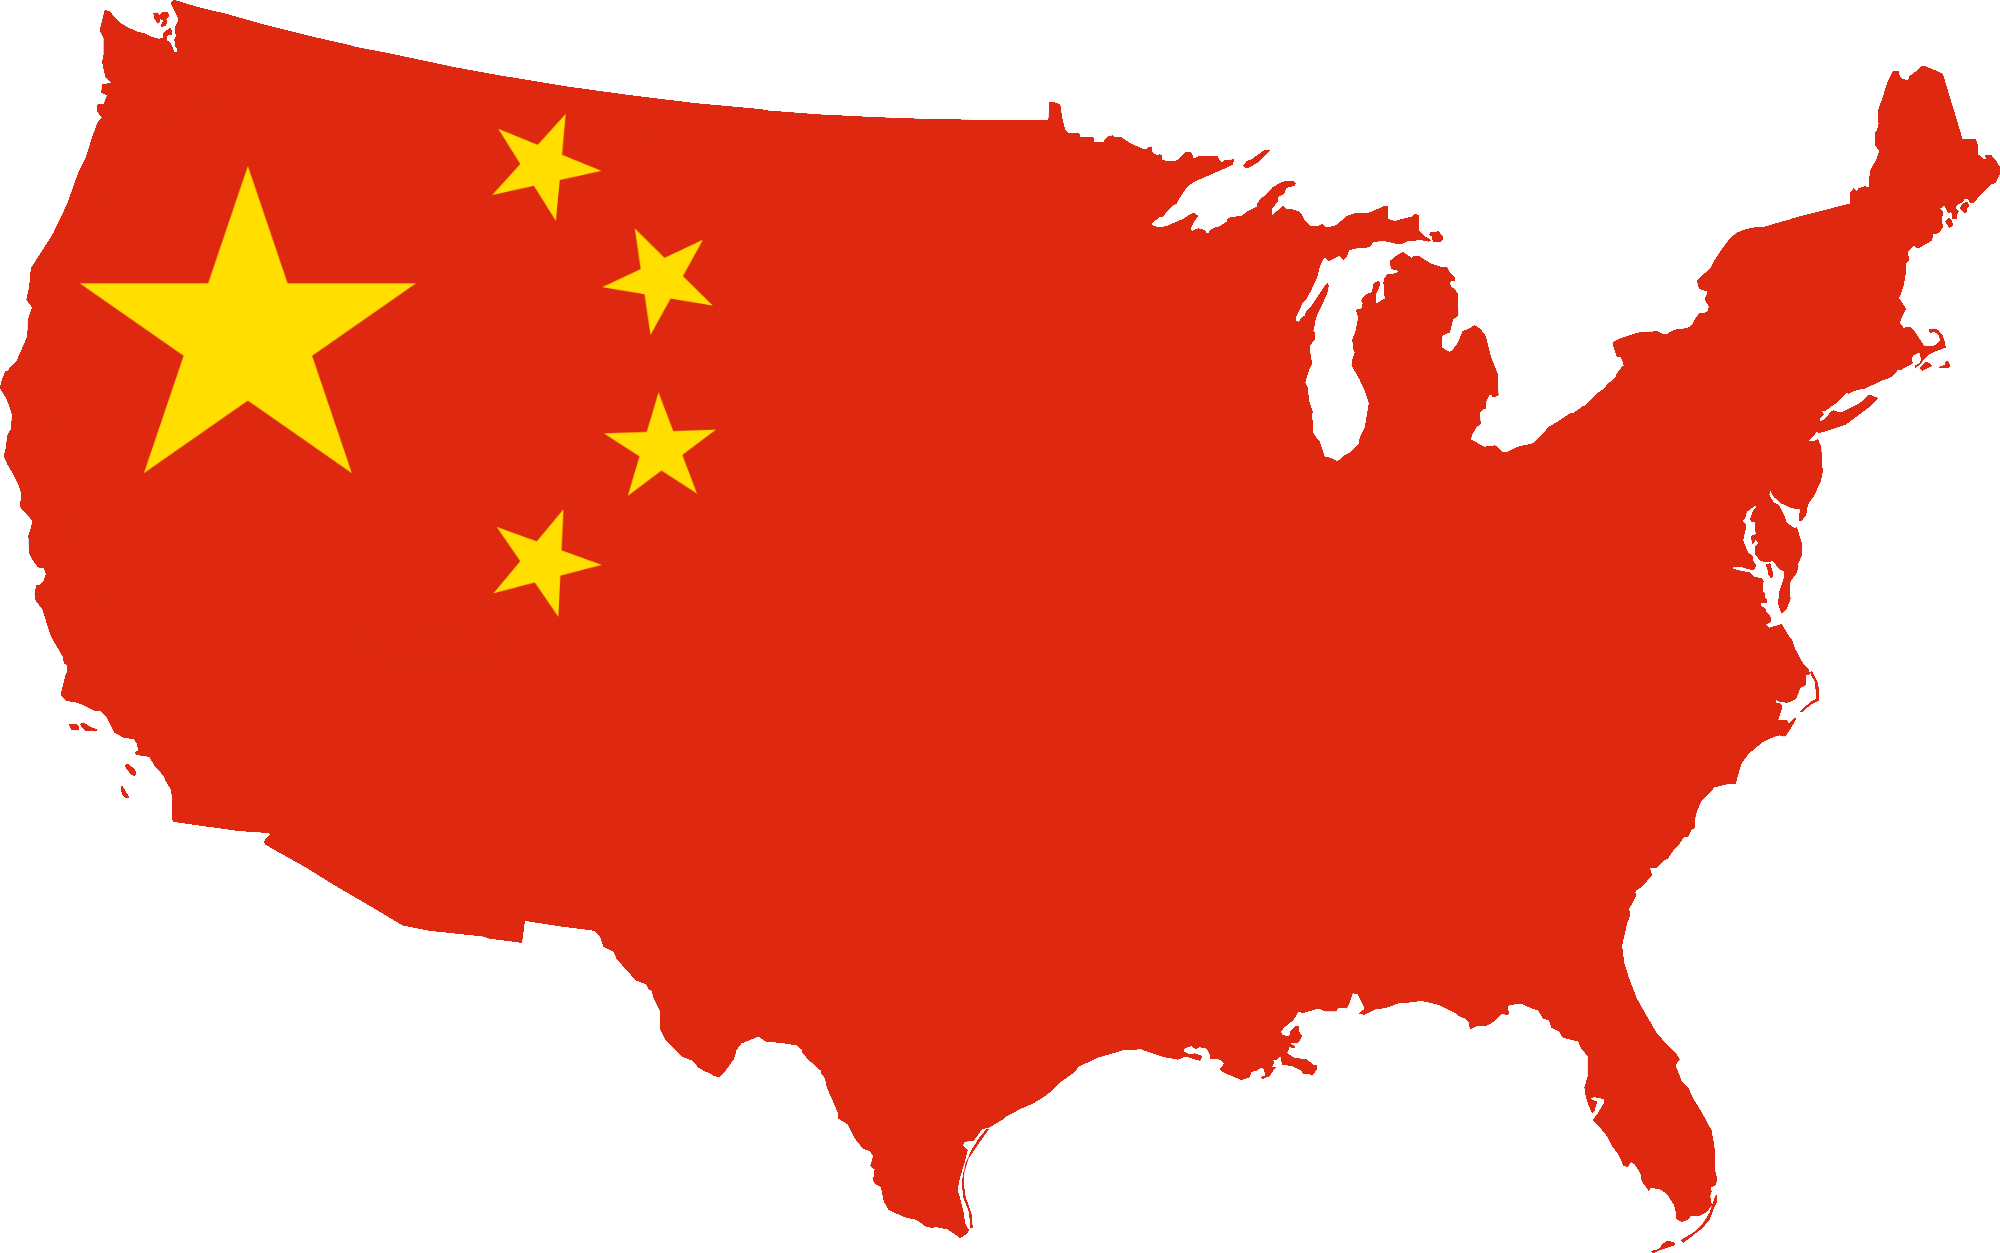 File:Flag Map of USA China.png.